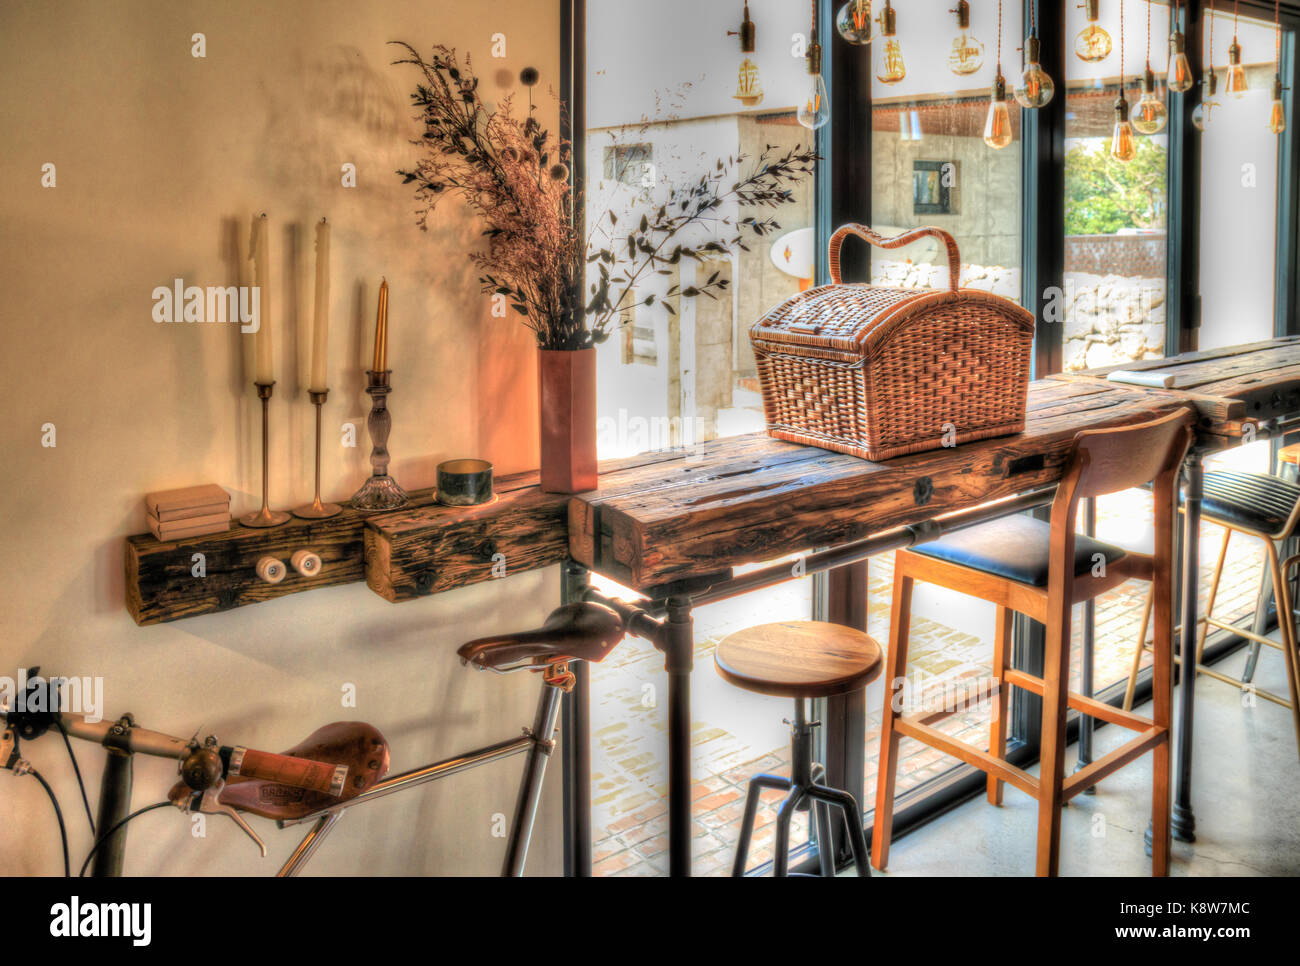 Cafe Interior Picnic Basket On The Wooden Brown Table By The Window Stock Photo Alamy